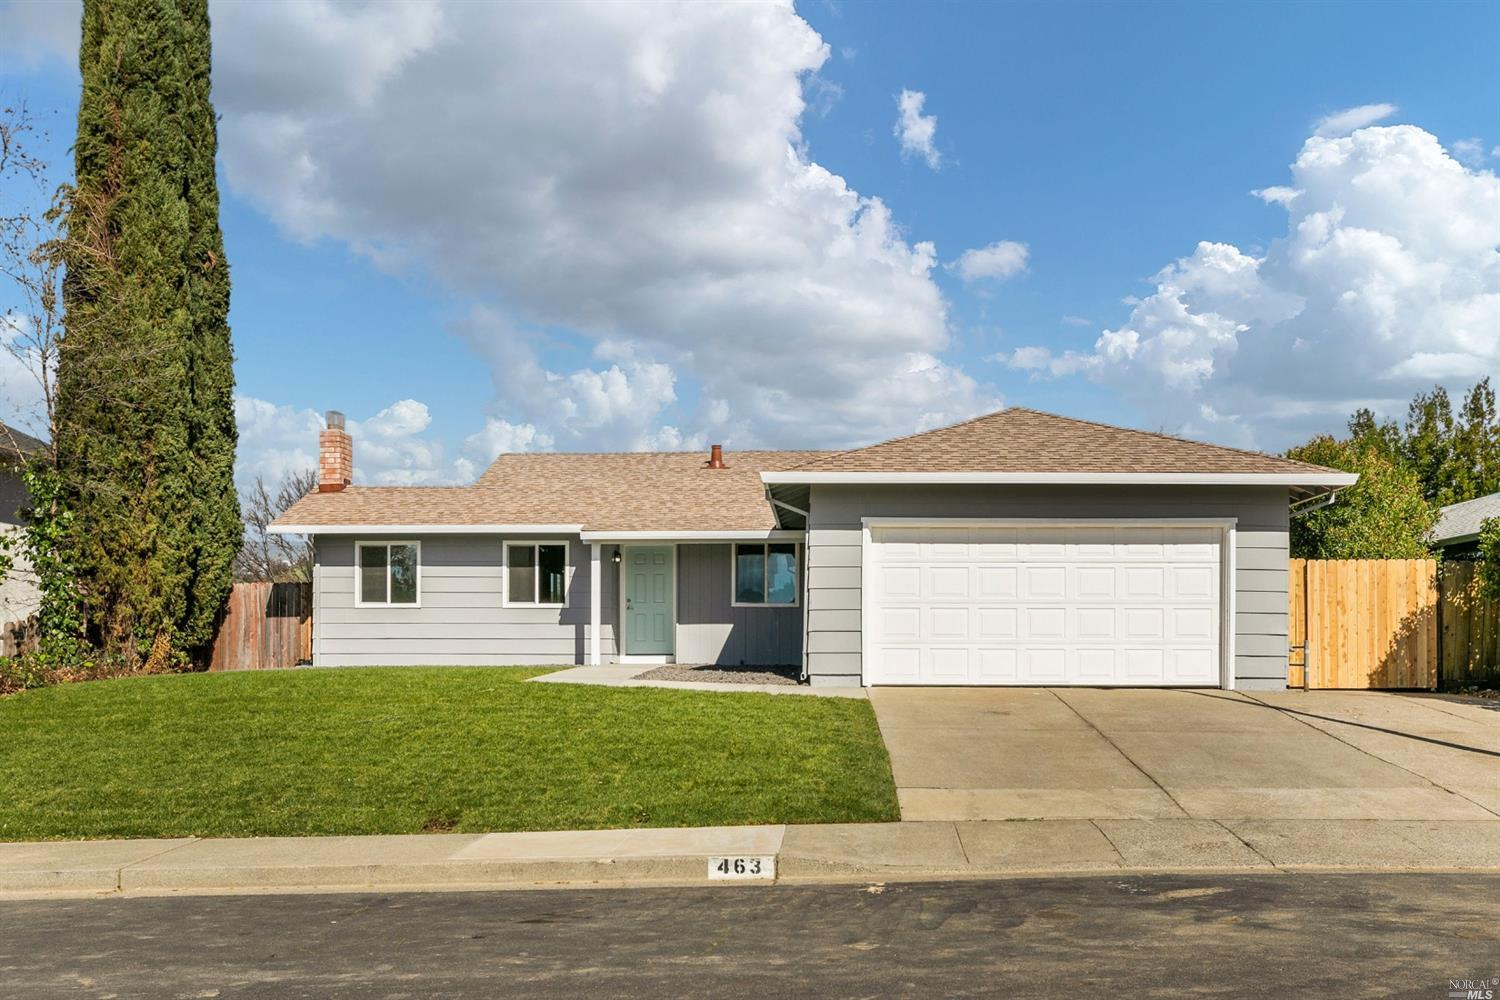 Extensively remodeled single story off N. Orchard! You will be impressed with the thoughtful upgrade